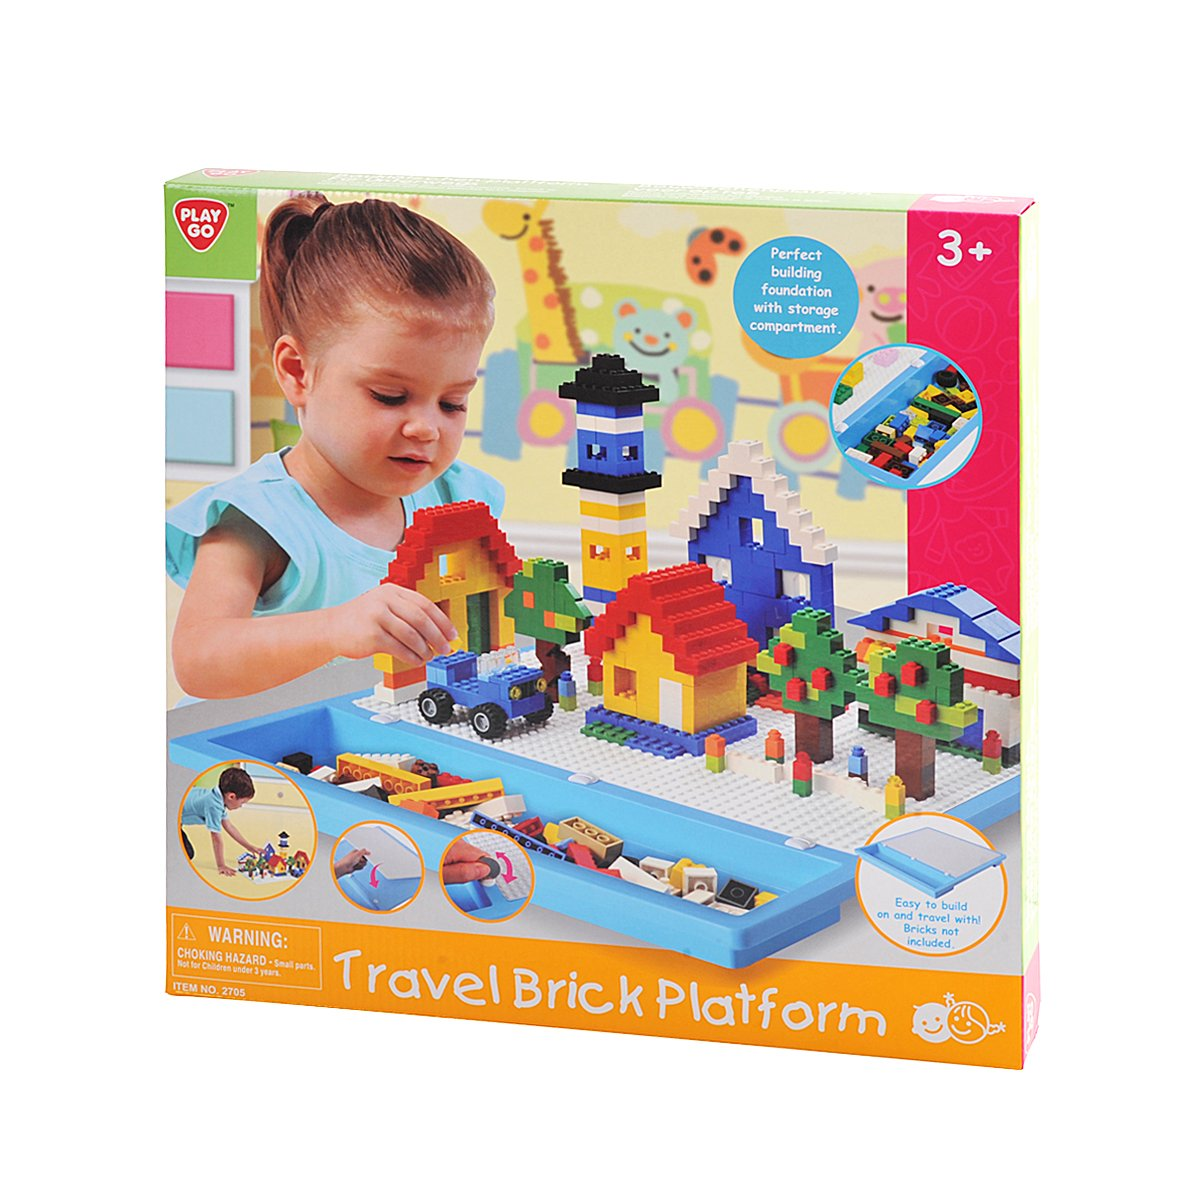 PlayGo Travel Brick Platform Bricks Not Included Midos Toys Distributor 1750